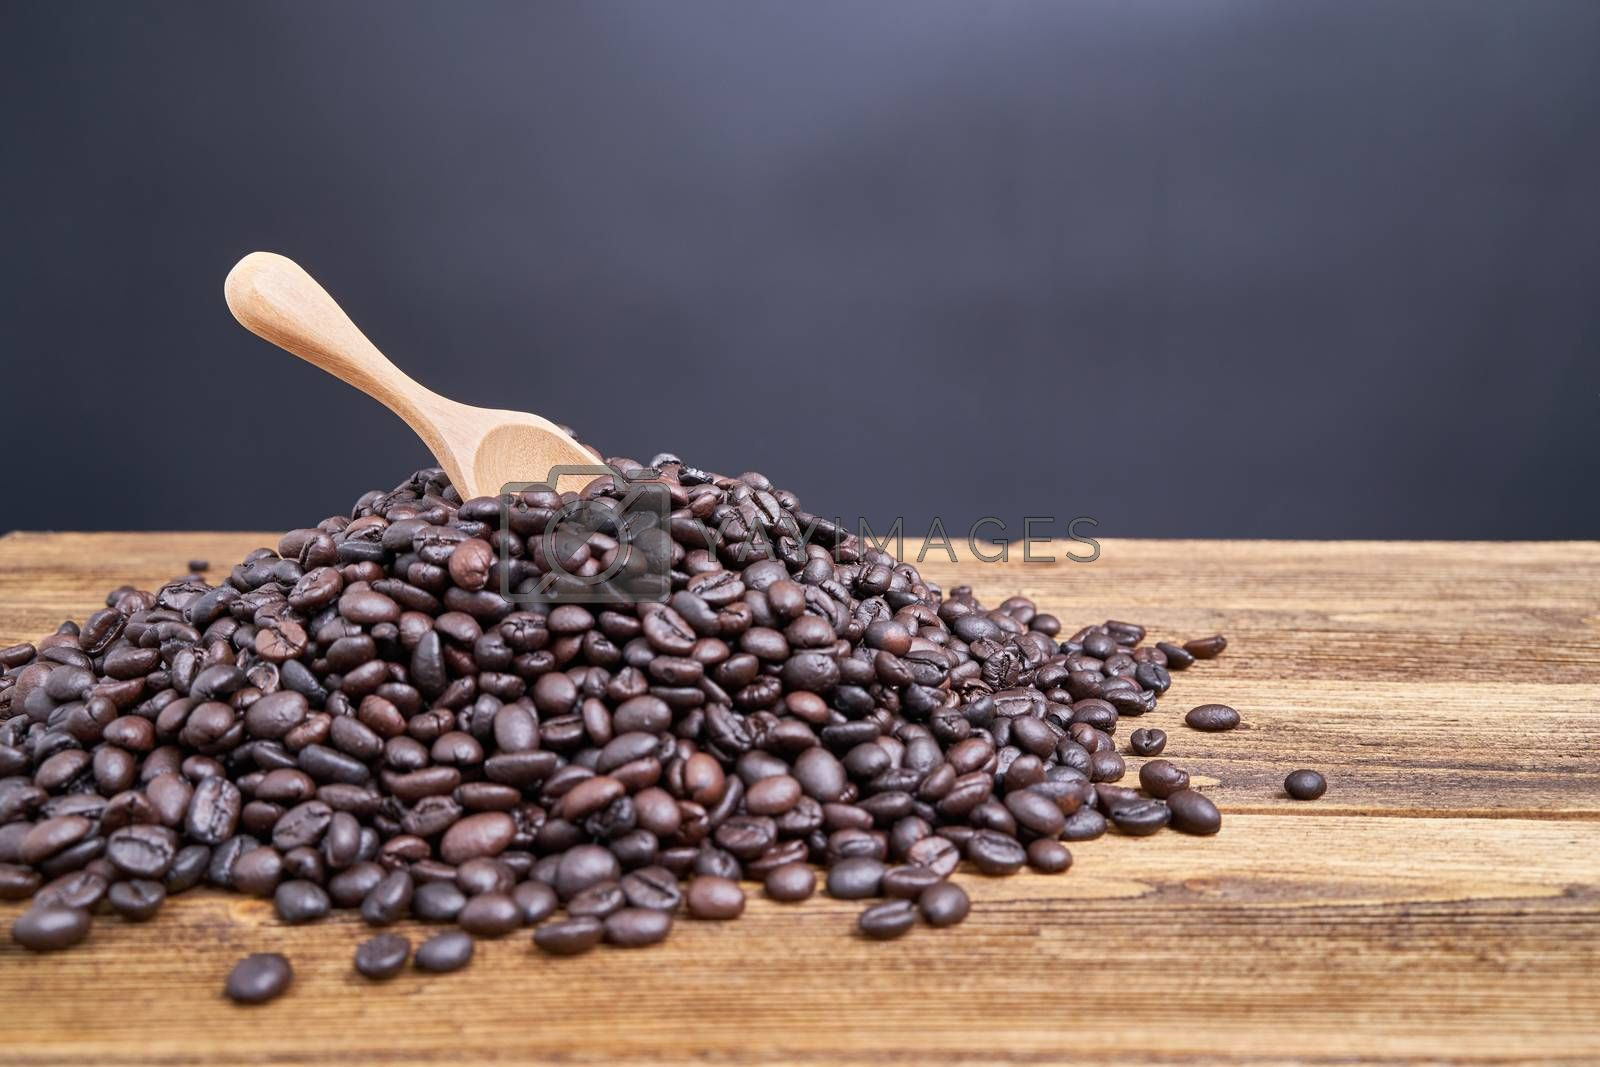 Royalty free image of Close up wood spoon put on pile of coffee bean by eaglesky